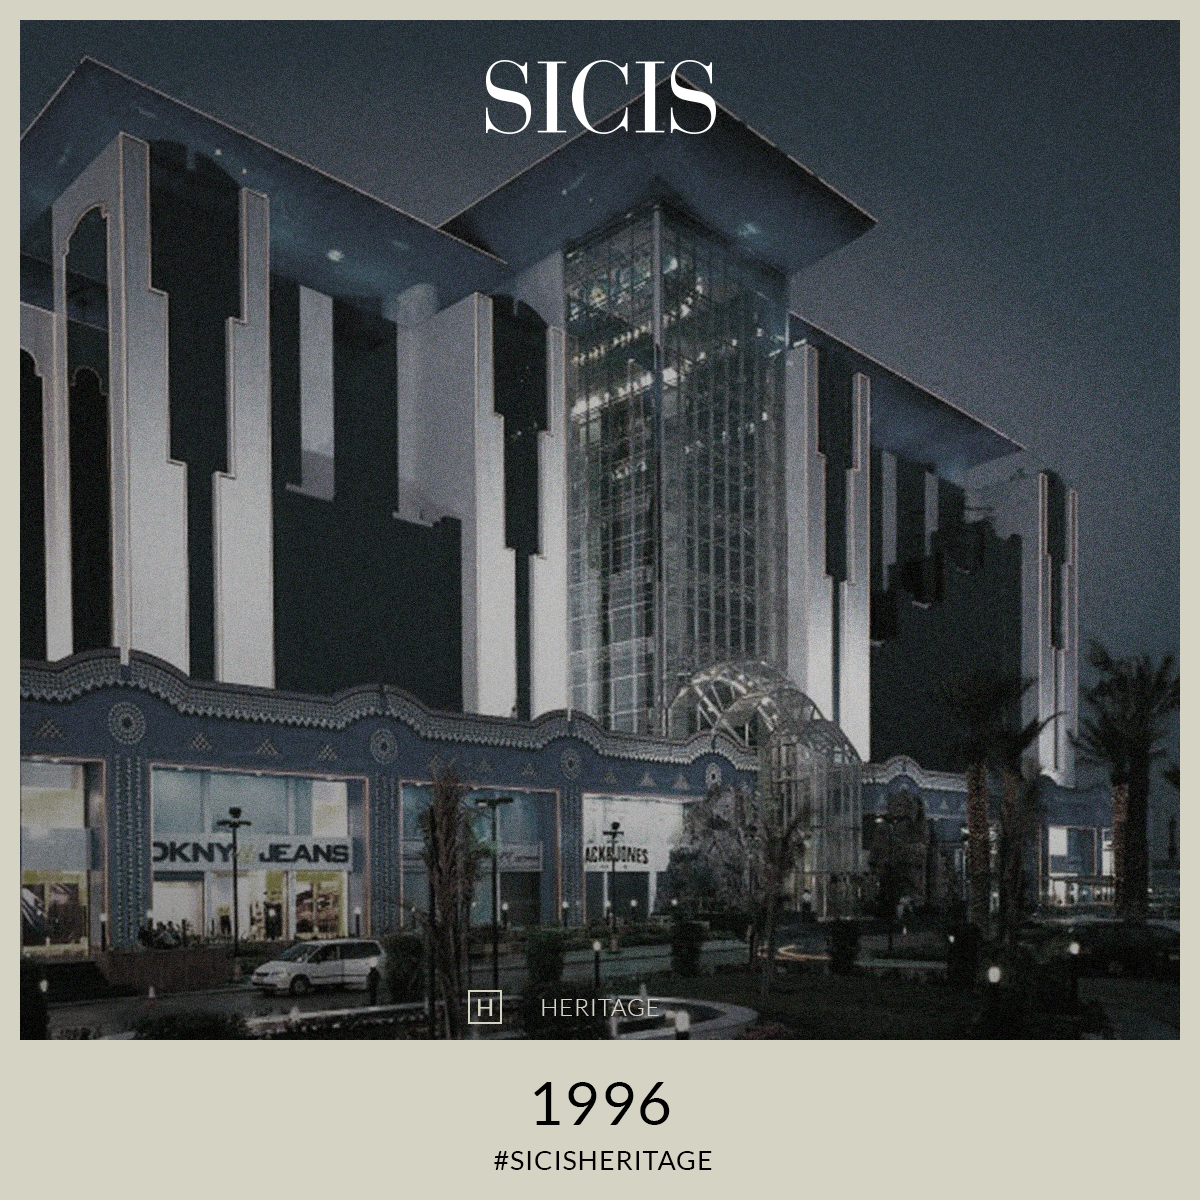 Sicis Designed And Realized 42 000 Sqm Of Mosaic For Mahmood Saeed Oasis Mall Jeddah Tha Guinness World Record Tag Book Mosaic Mosaic Art Mosaic Projects